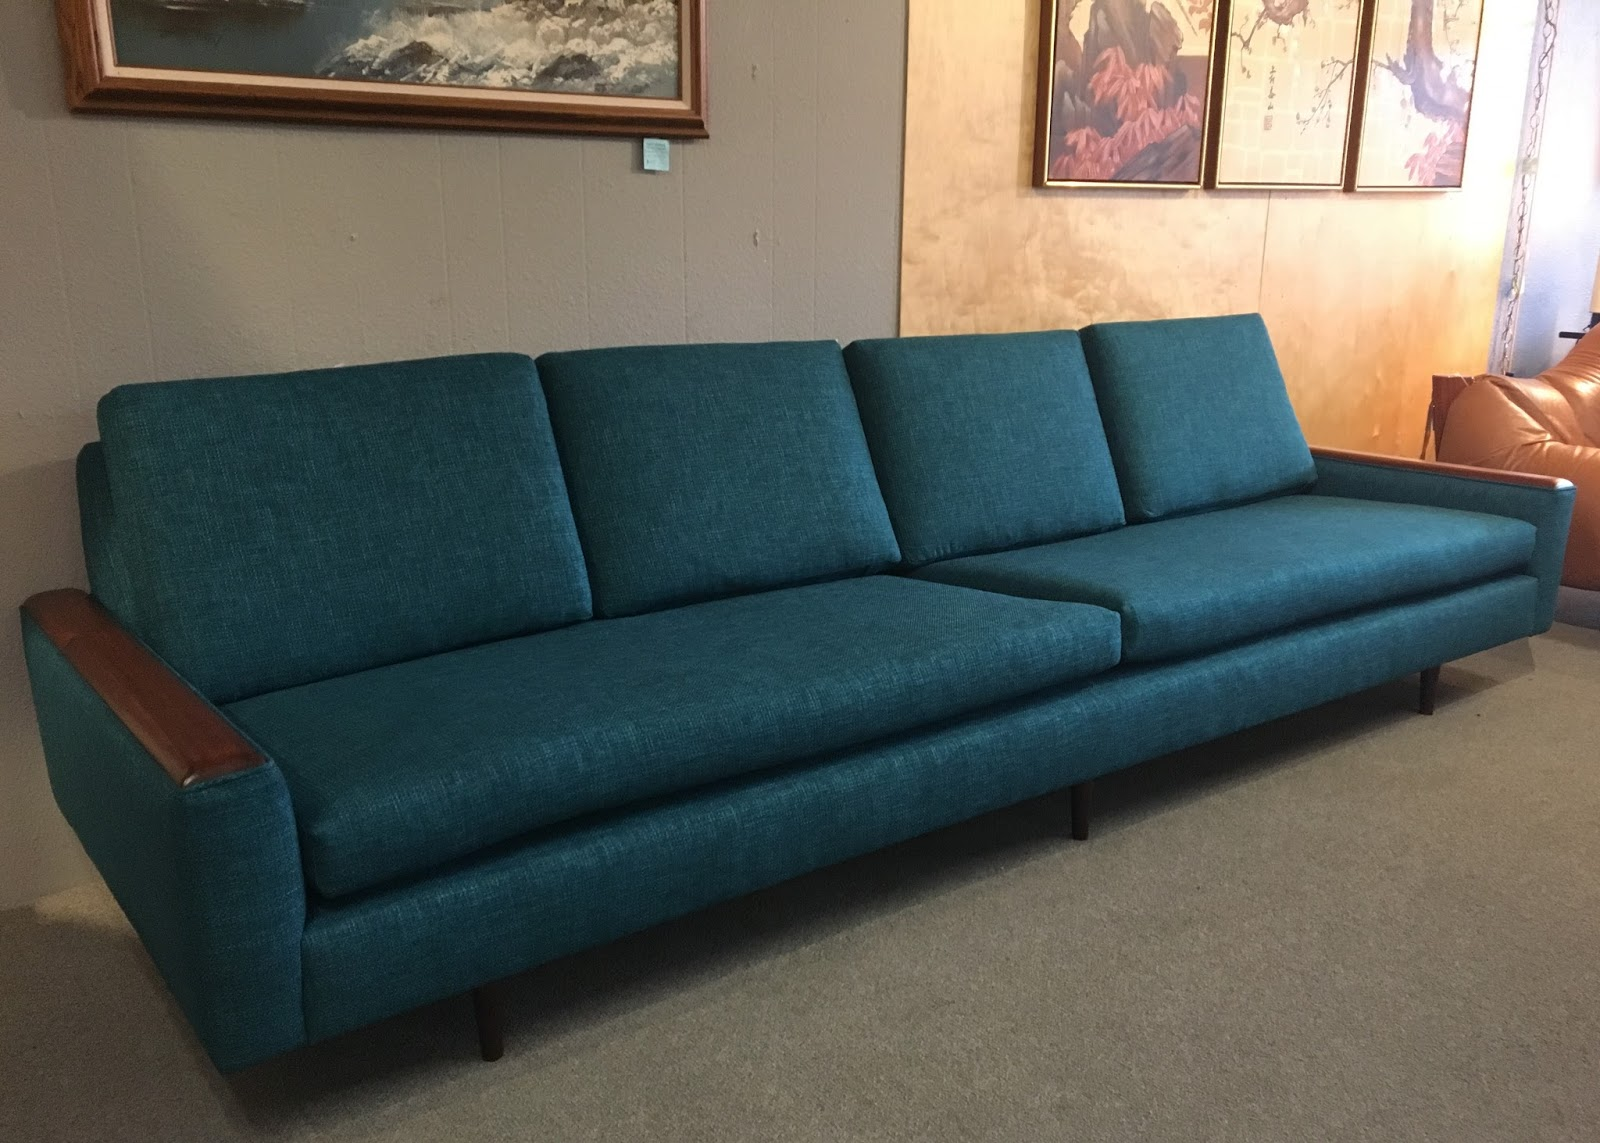 Our Biggest Project This Week Was Upholstering This 108u0027u0027 Long Sofa. I Have  Been Trying Out Some New Refinishing Techniques.